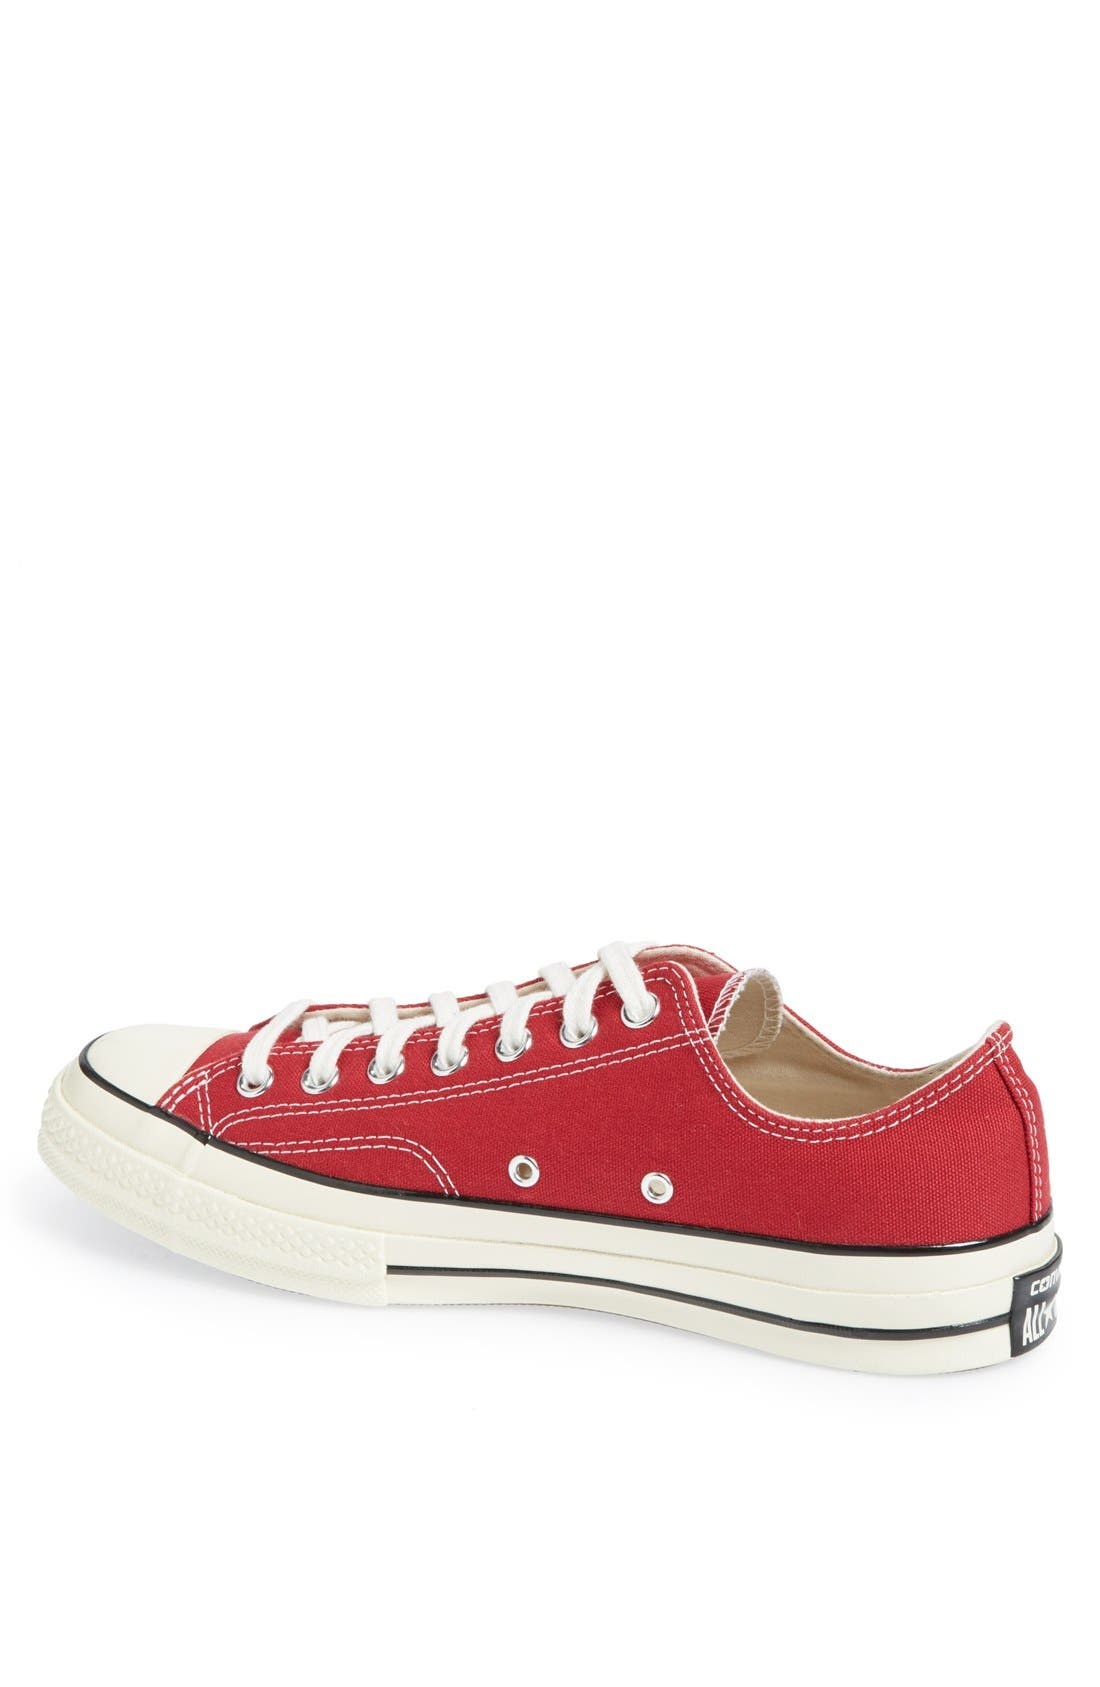 Chuck Taylor<sup>®</sup> All Star<sup>®</sup> '70 Low Sneaker,                             Alternate thumbnail 24, color,